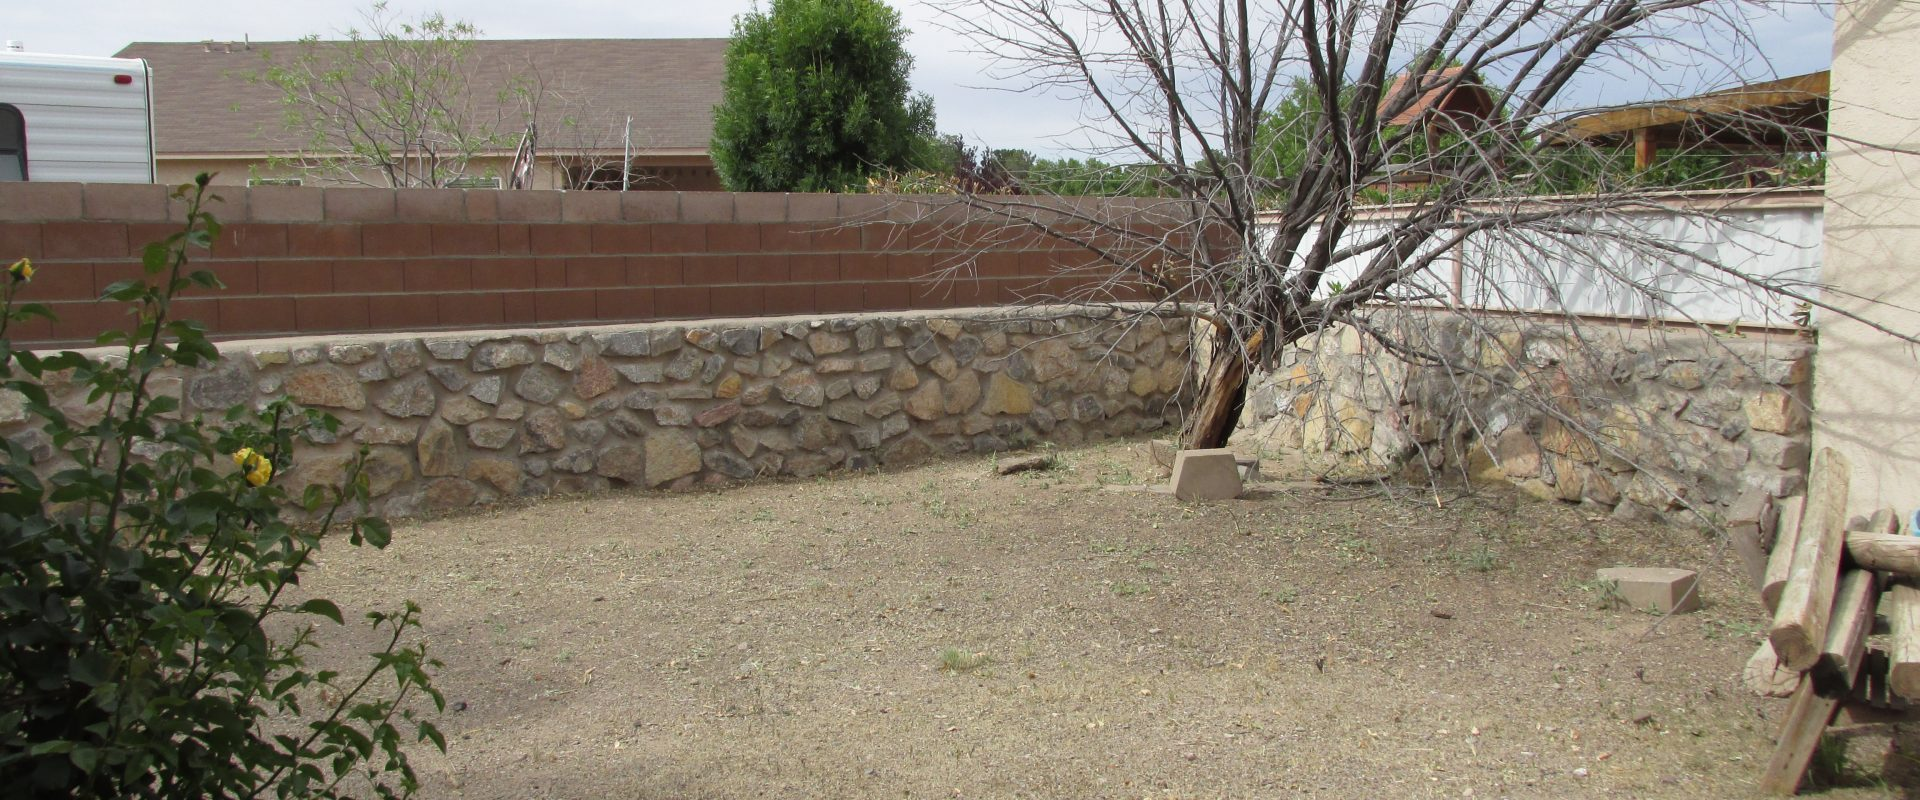 810 Chateau Dr., Las Cruces, New Mexico 88005